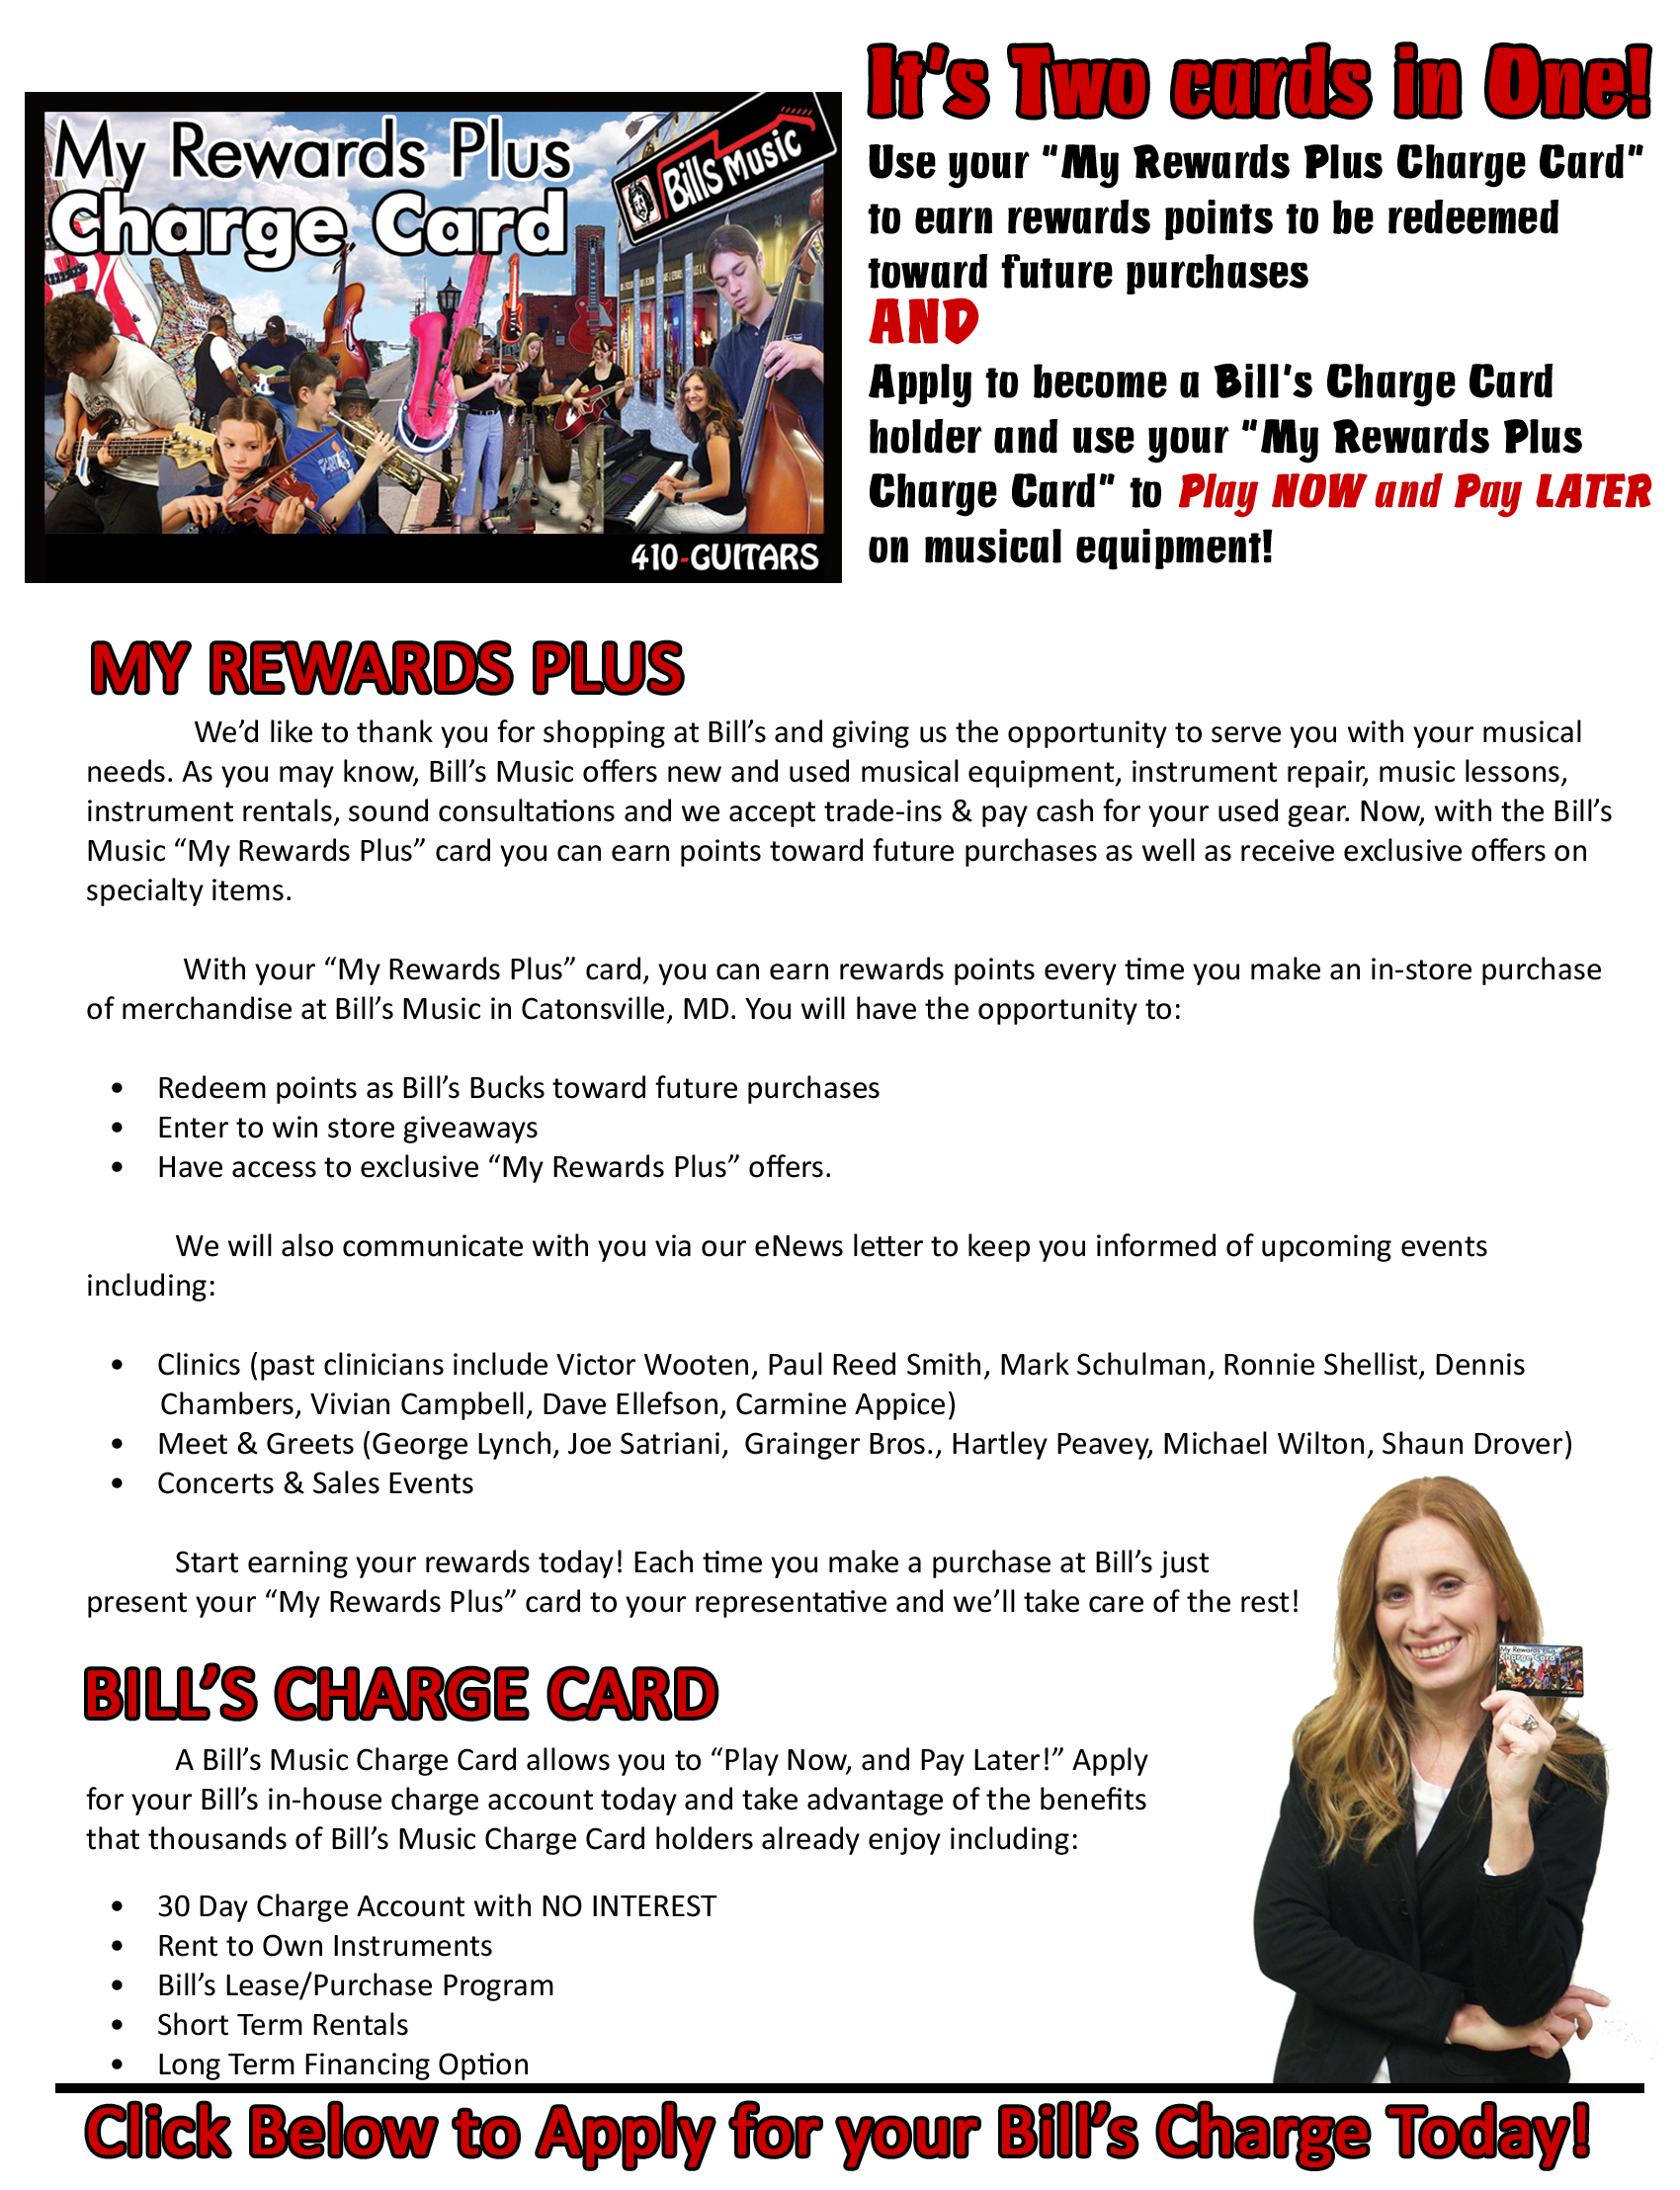 rewardscardwebpage4.png